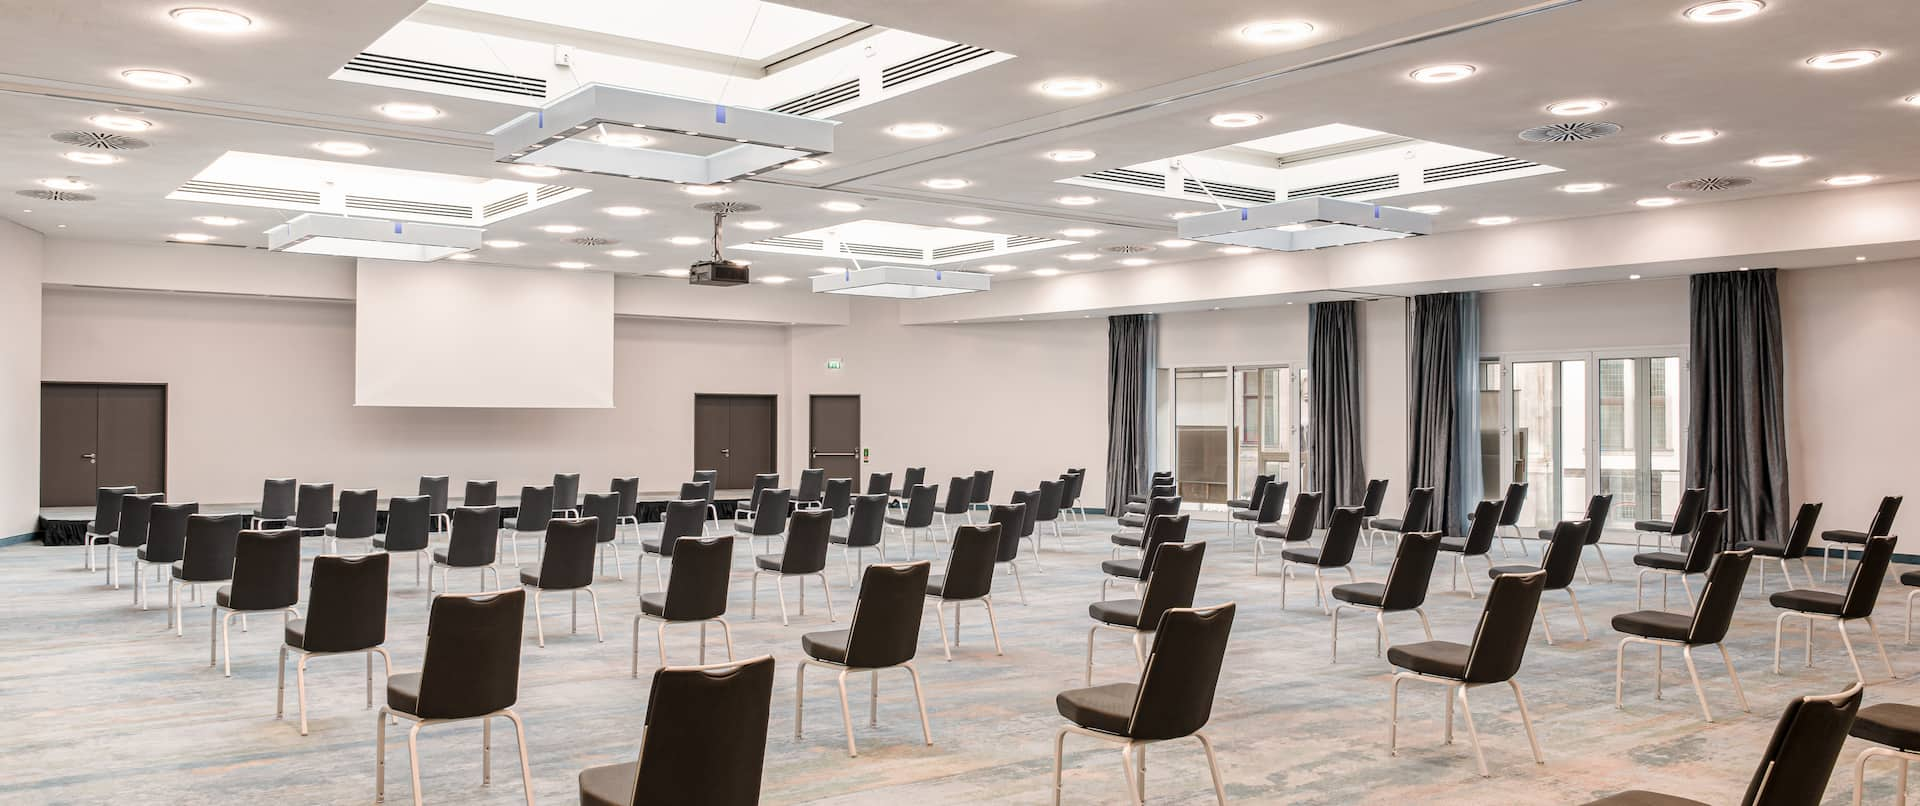 Hotel Meeting Space - Meeting Room with Chairs